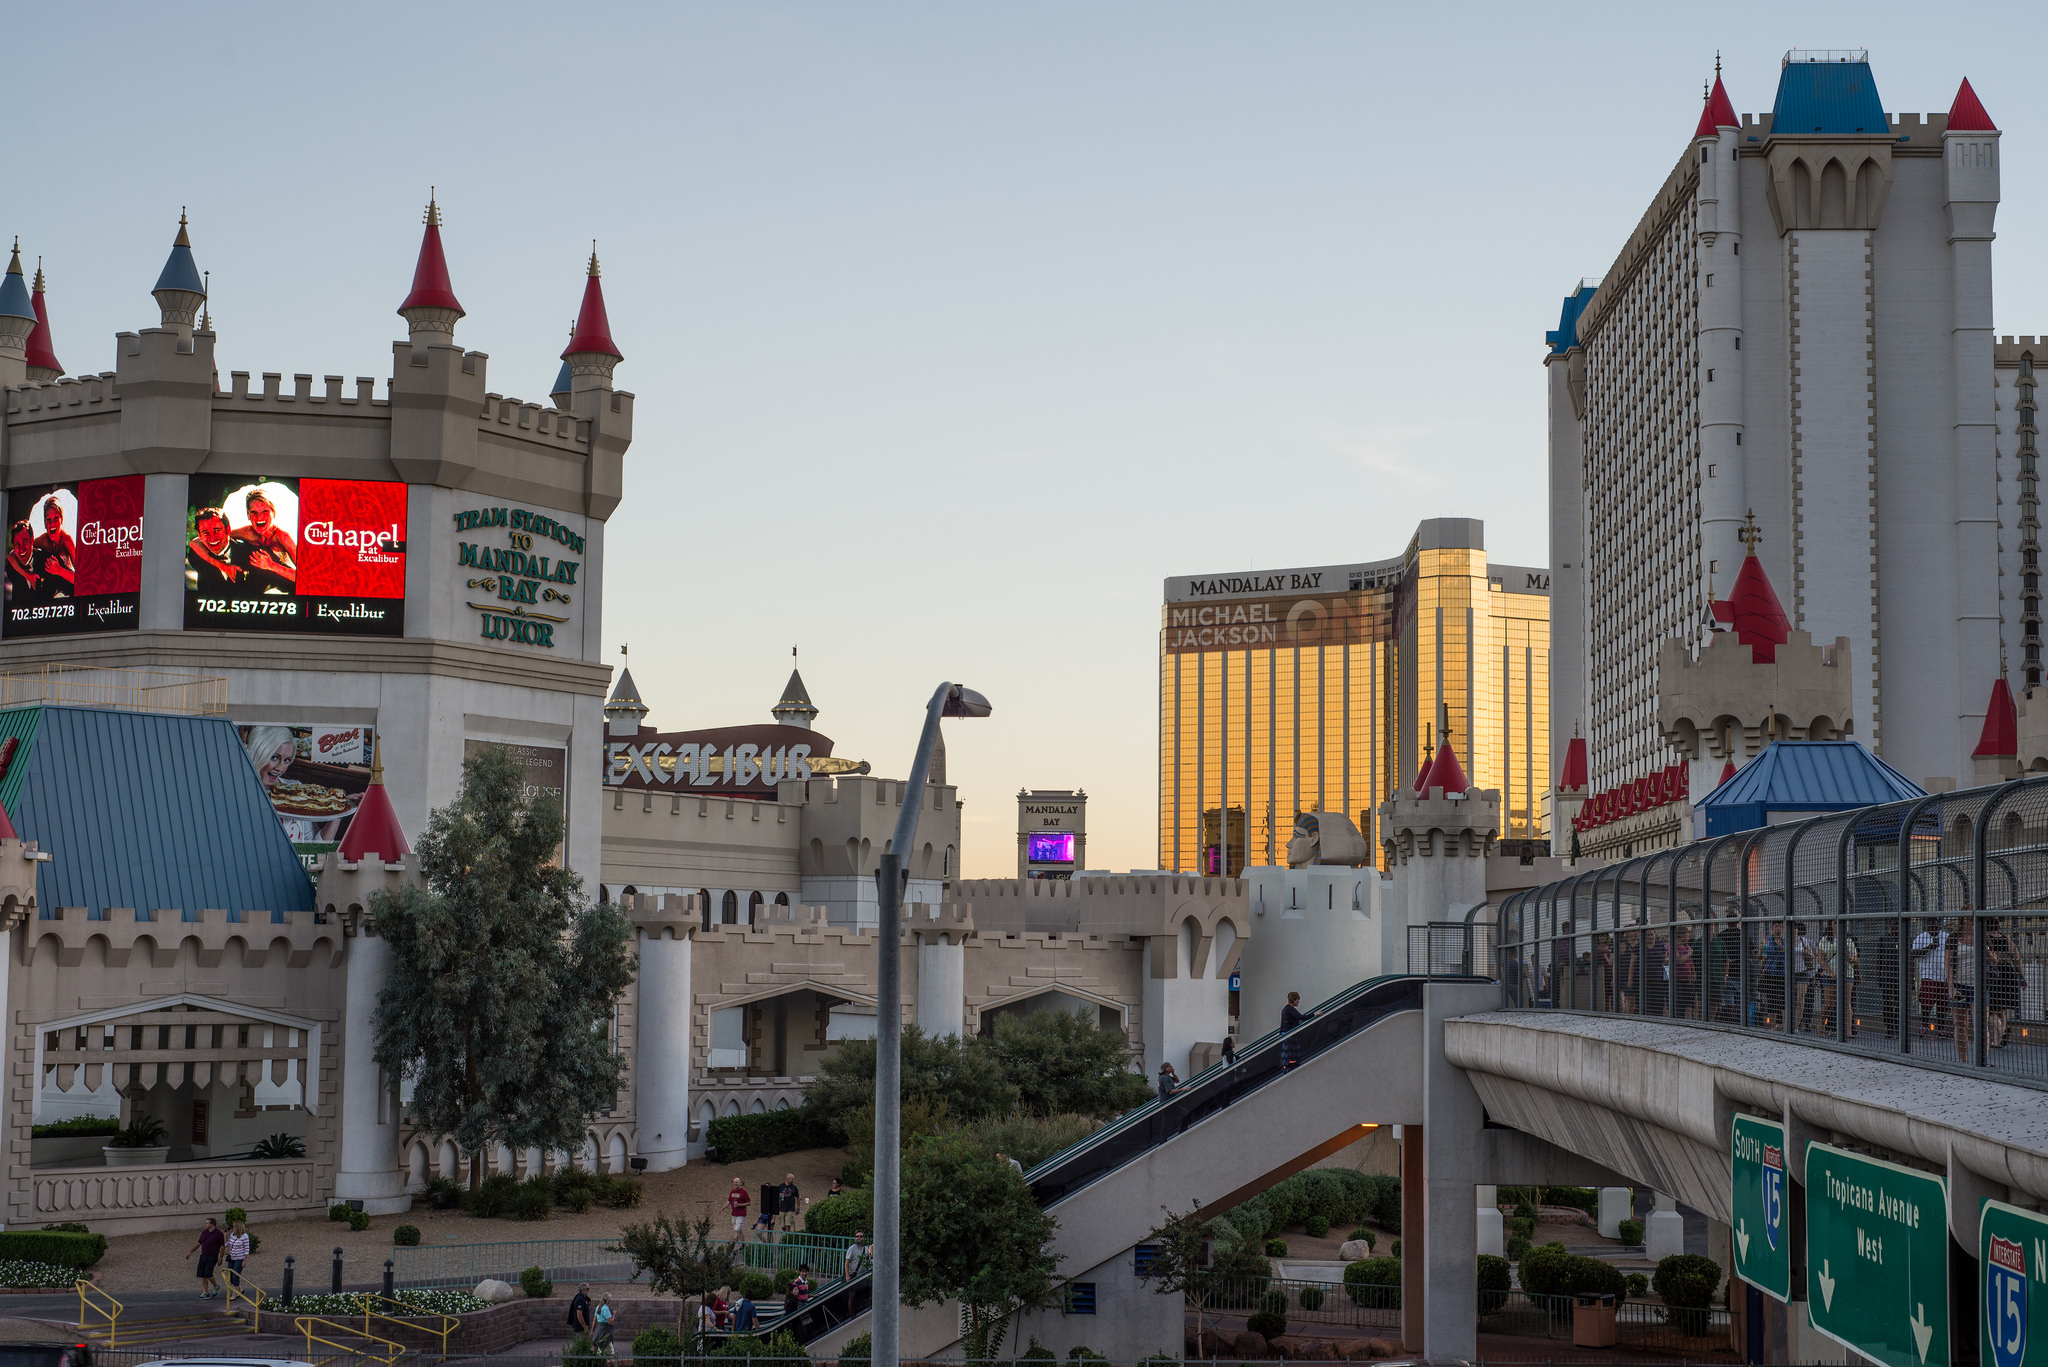 The Medieval setting of Excalibur contrasted with the gold colours of Mandalay Bay